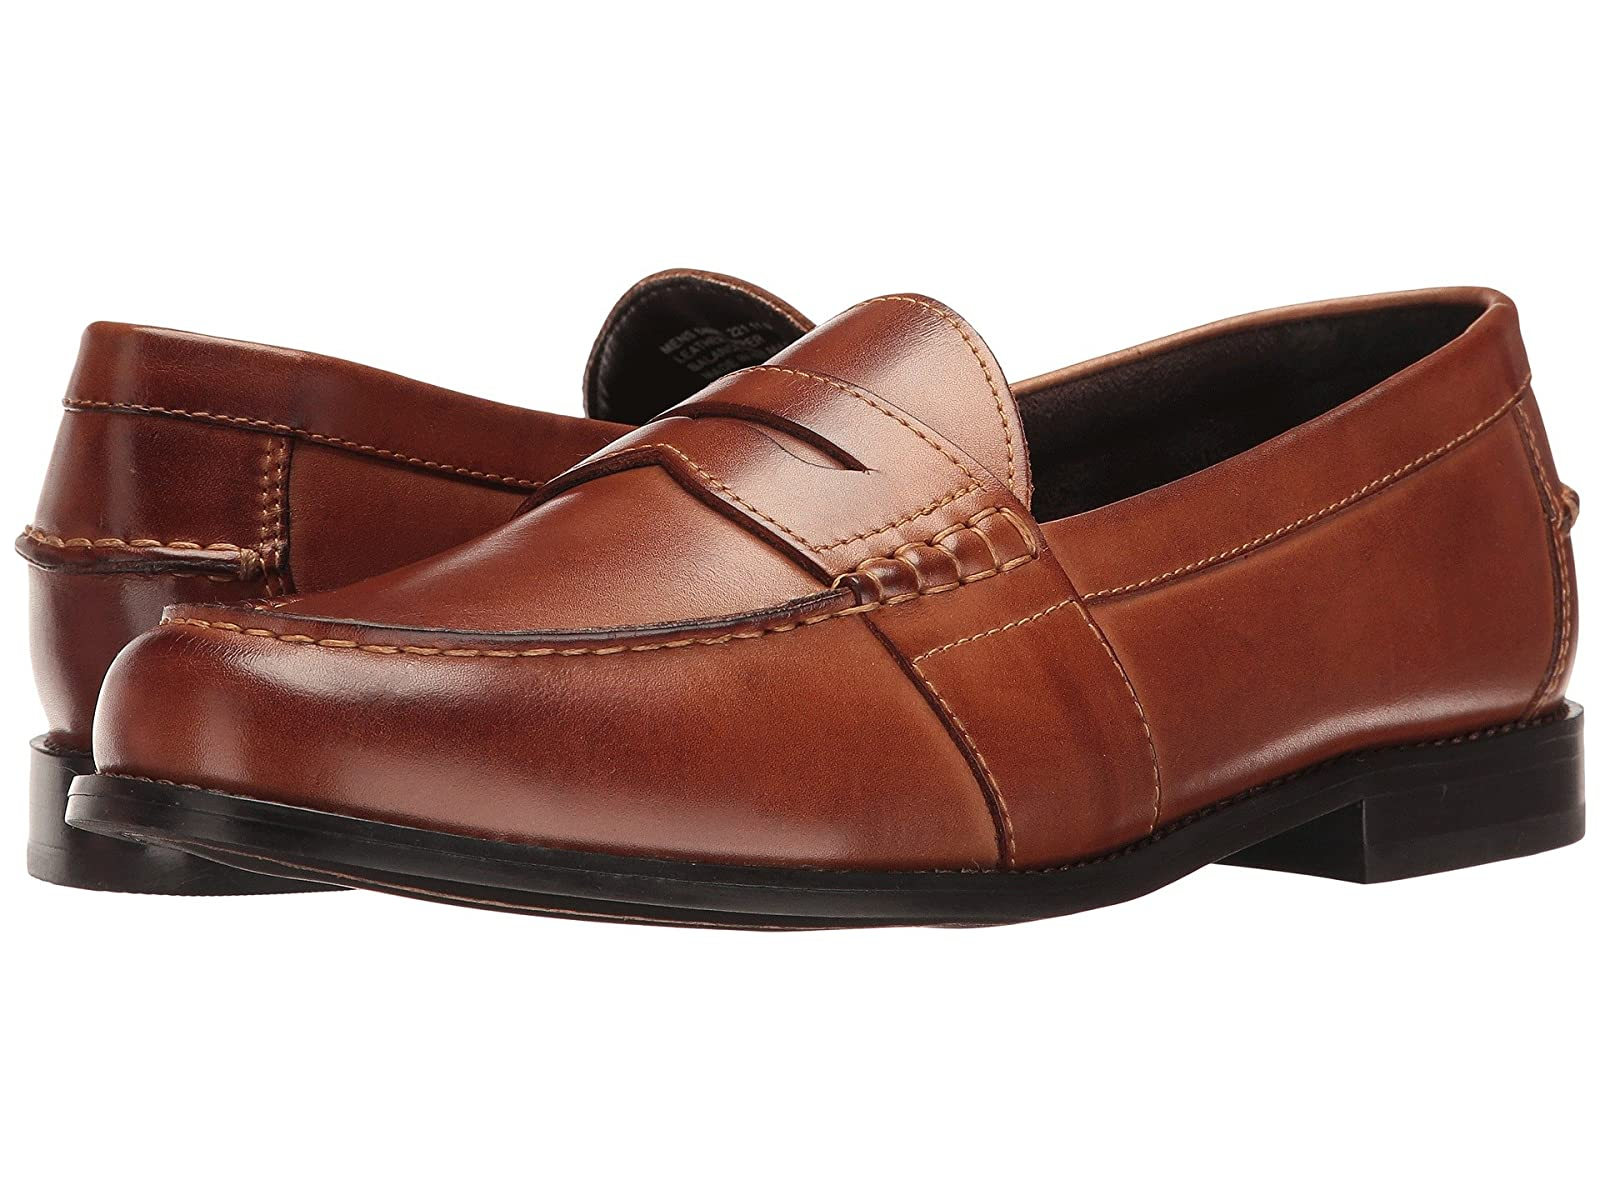 Nunn Bush Noah Beef Roll Penny LoaferAtmospheric grades have affordable shoes